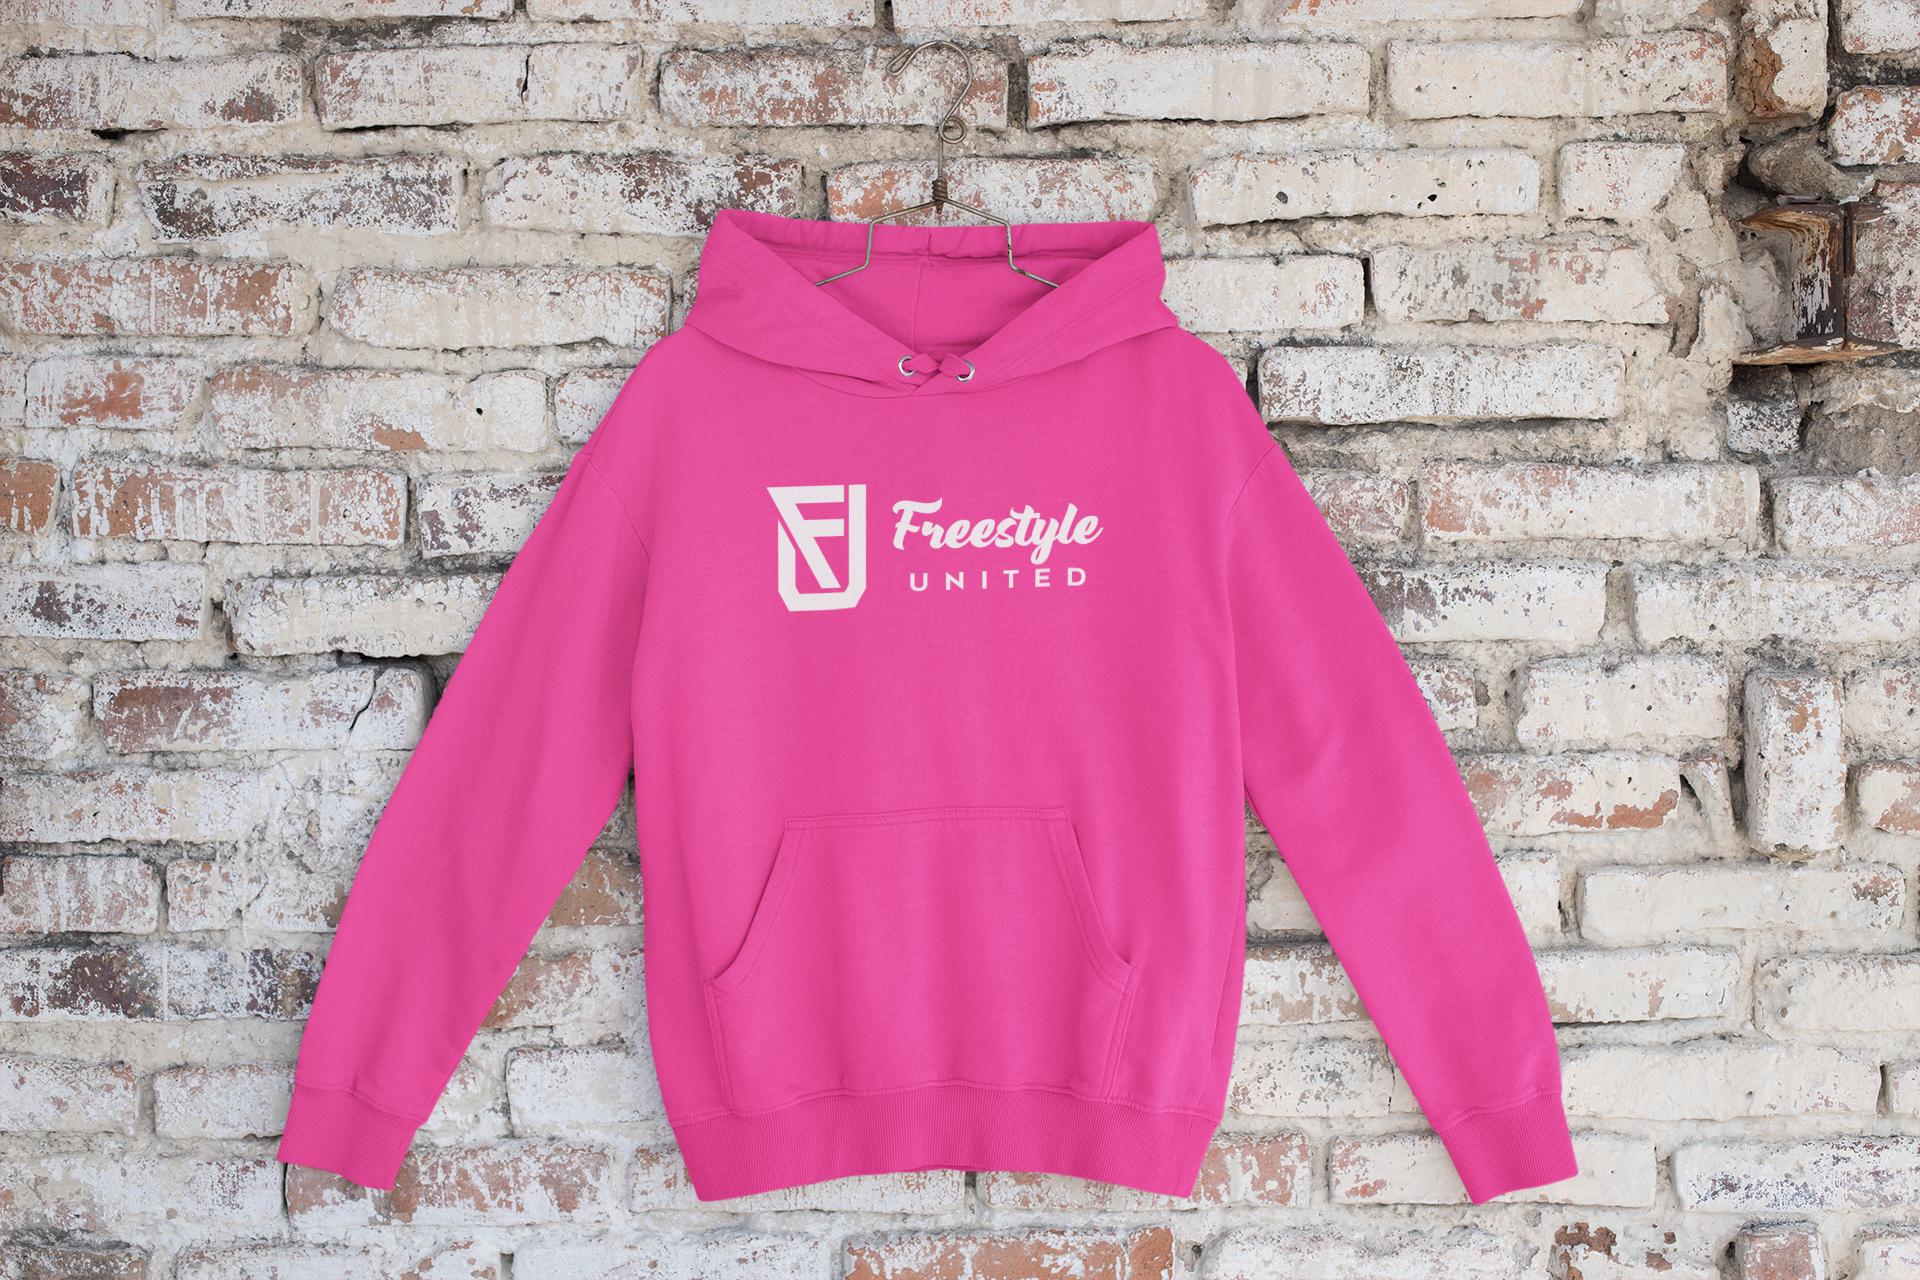 Freestyle United Apparel